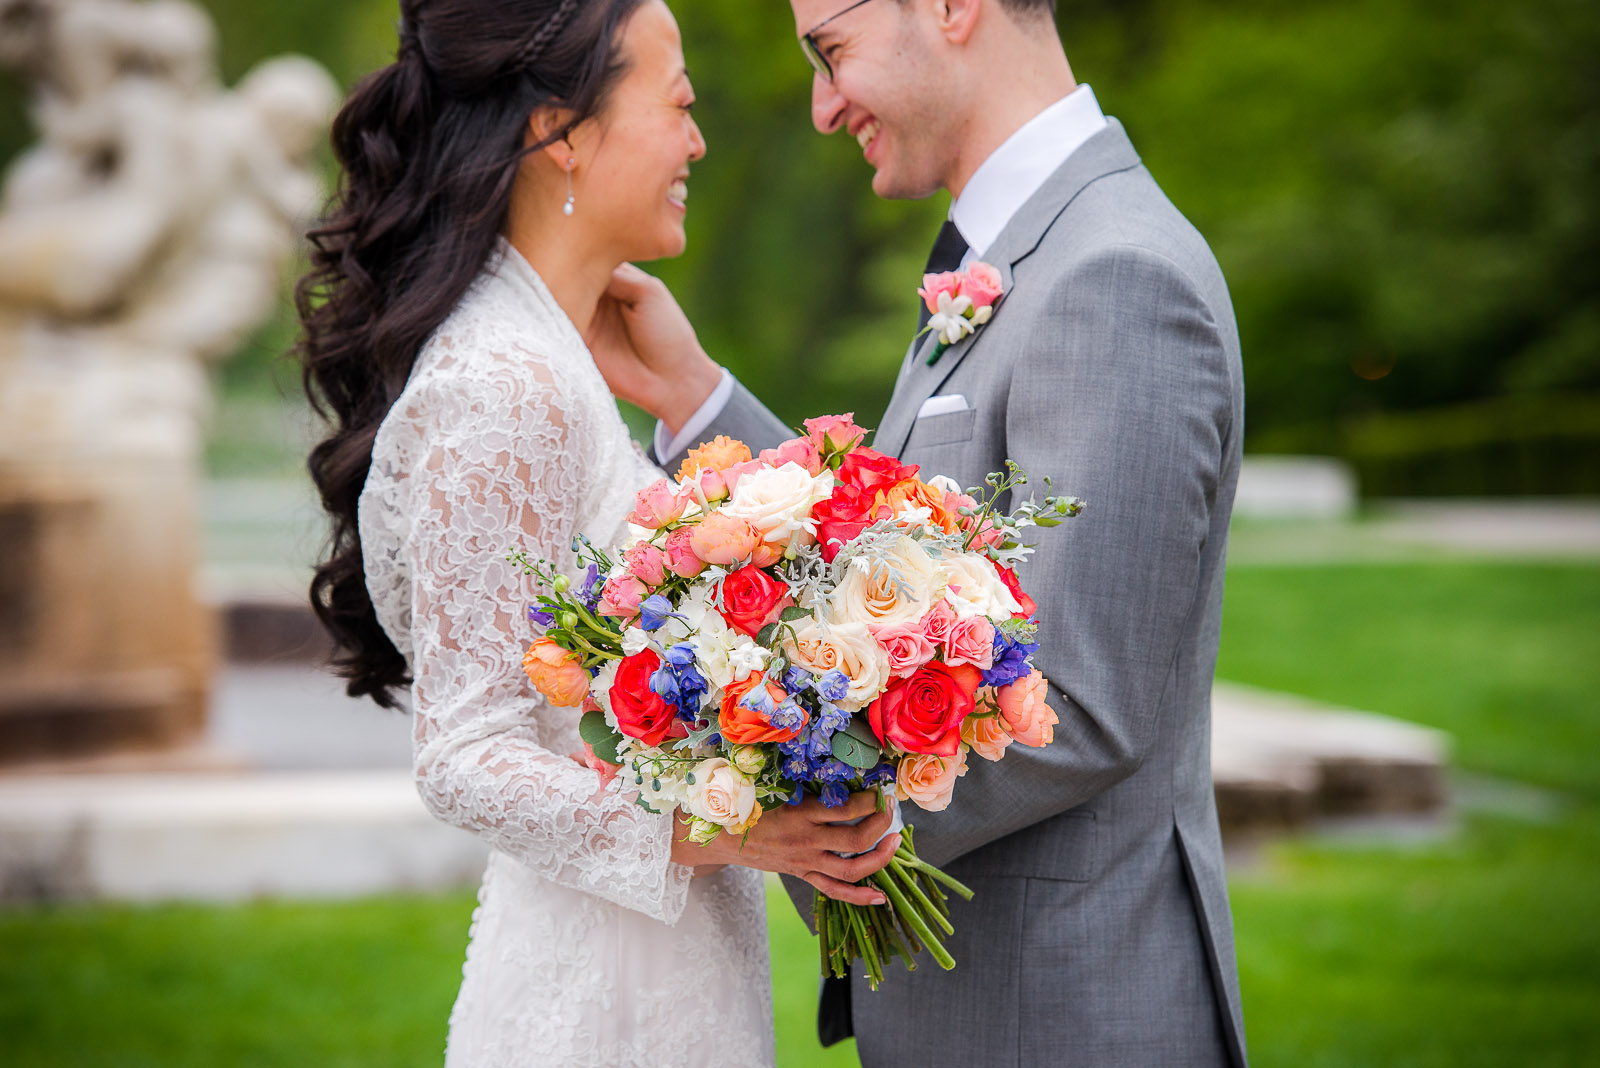 Eric_and_Christy_Photography_Blog_Wedding_Anne_Michael-13